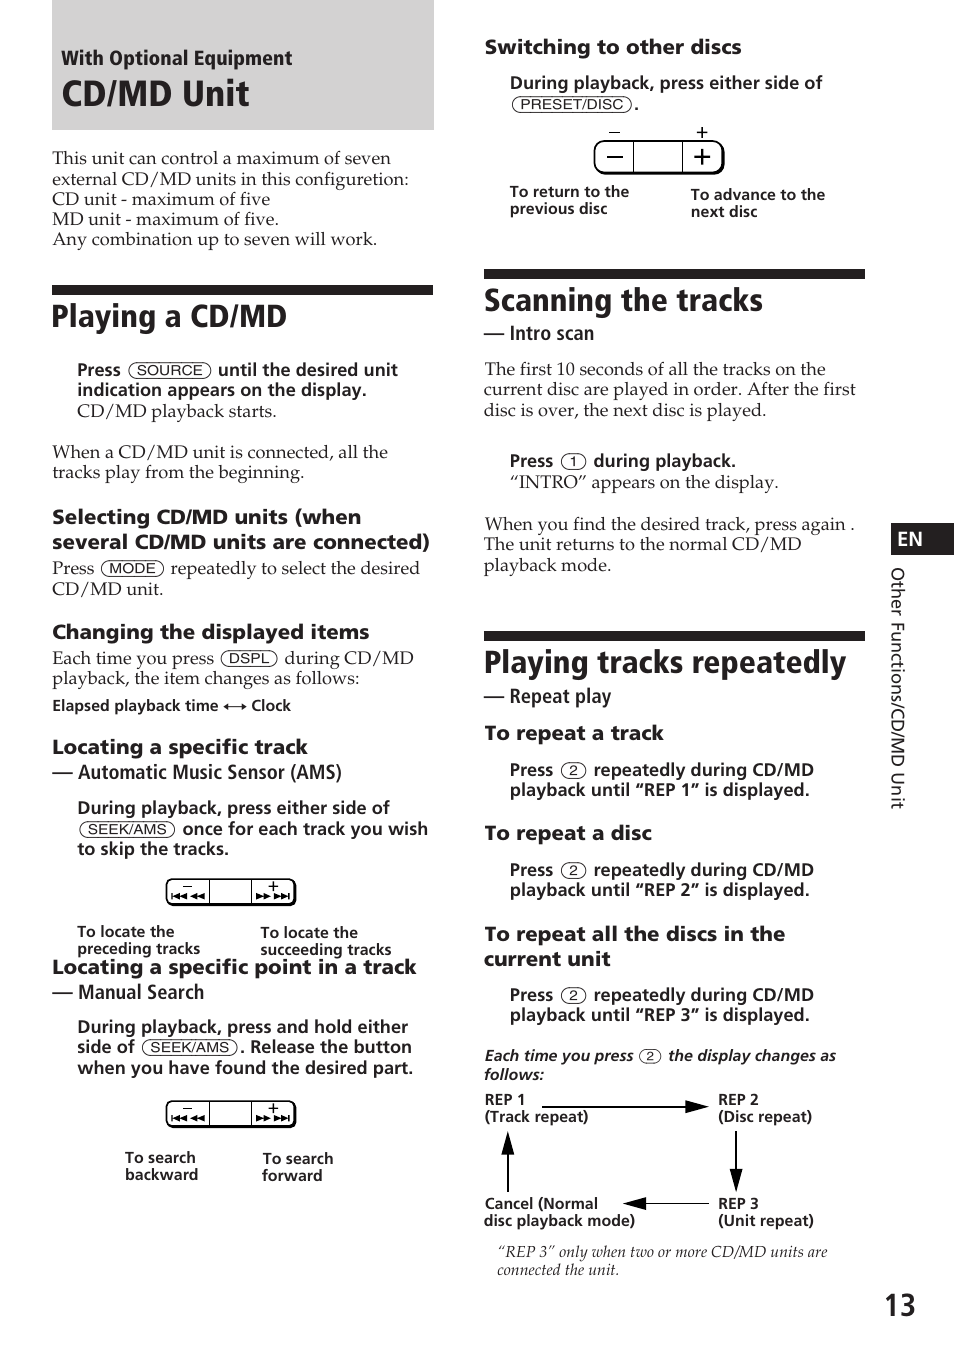 cd md unit scanning the tracks playing tracks repeatedly sony xr rh manualsdir com Sony DAV HDX576WF Manual Sony User Manual Guide